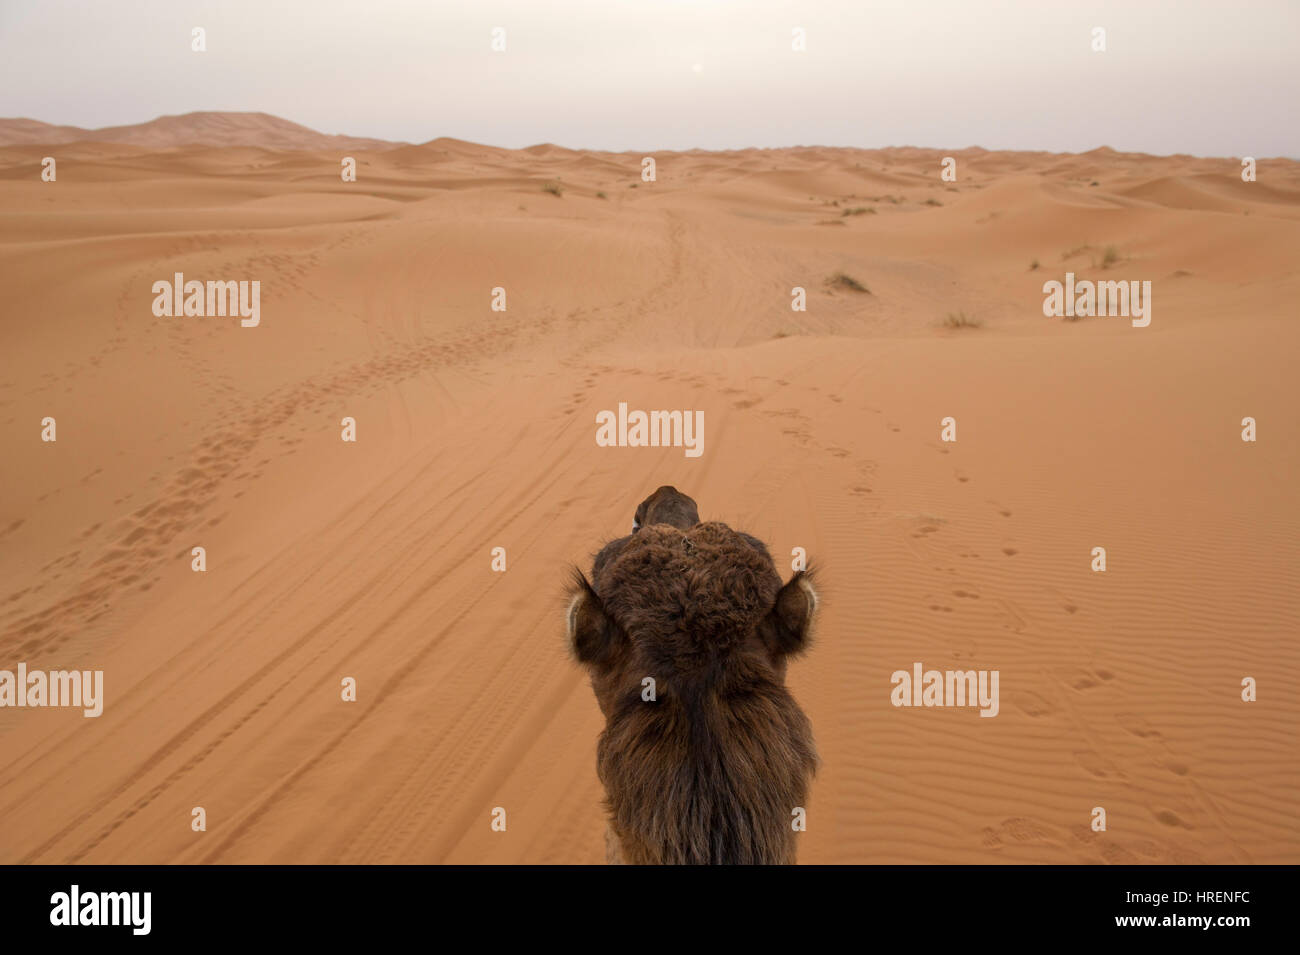 Camel Trekking into the sands of the Sahara Desert in Merzouga, Morocco Stock Photo